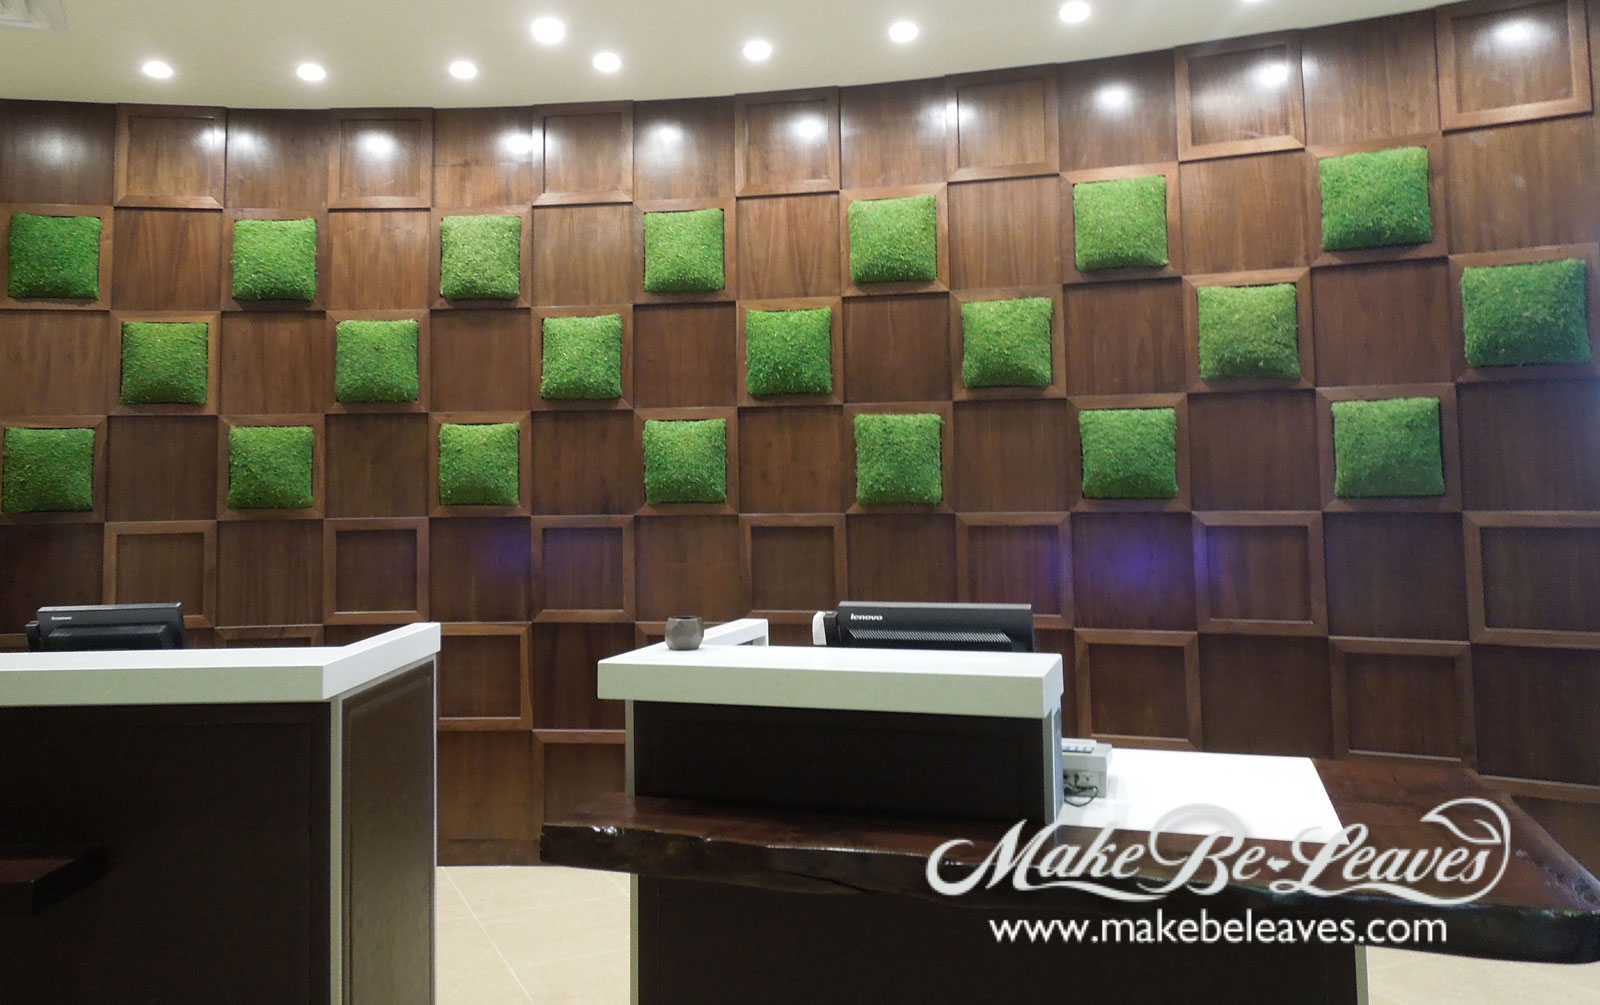 Make Be-Leaves faux-lobby-moss-squares